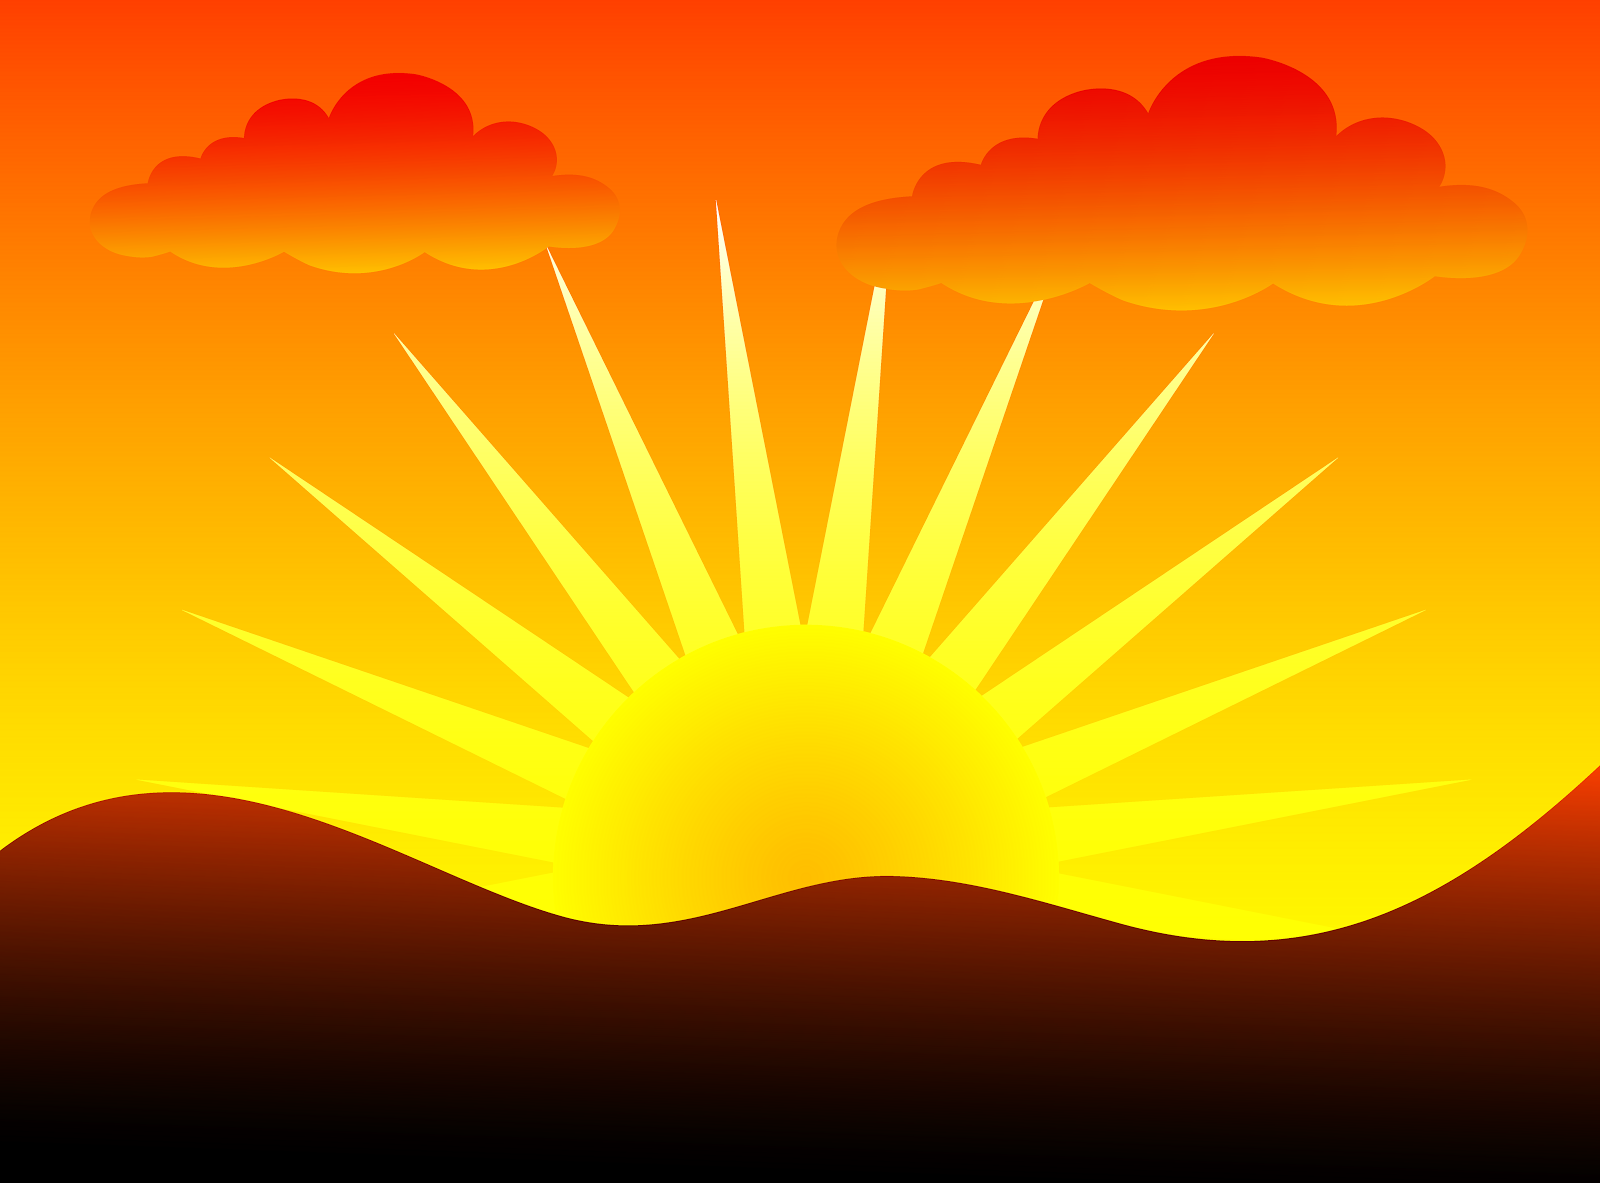 Sunrise eventing clip art free clipart images